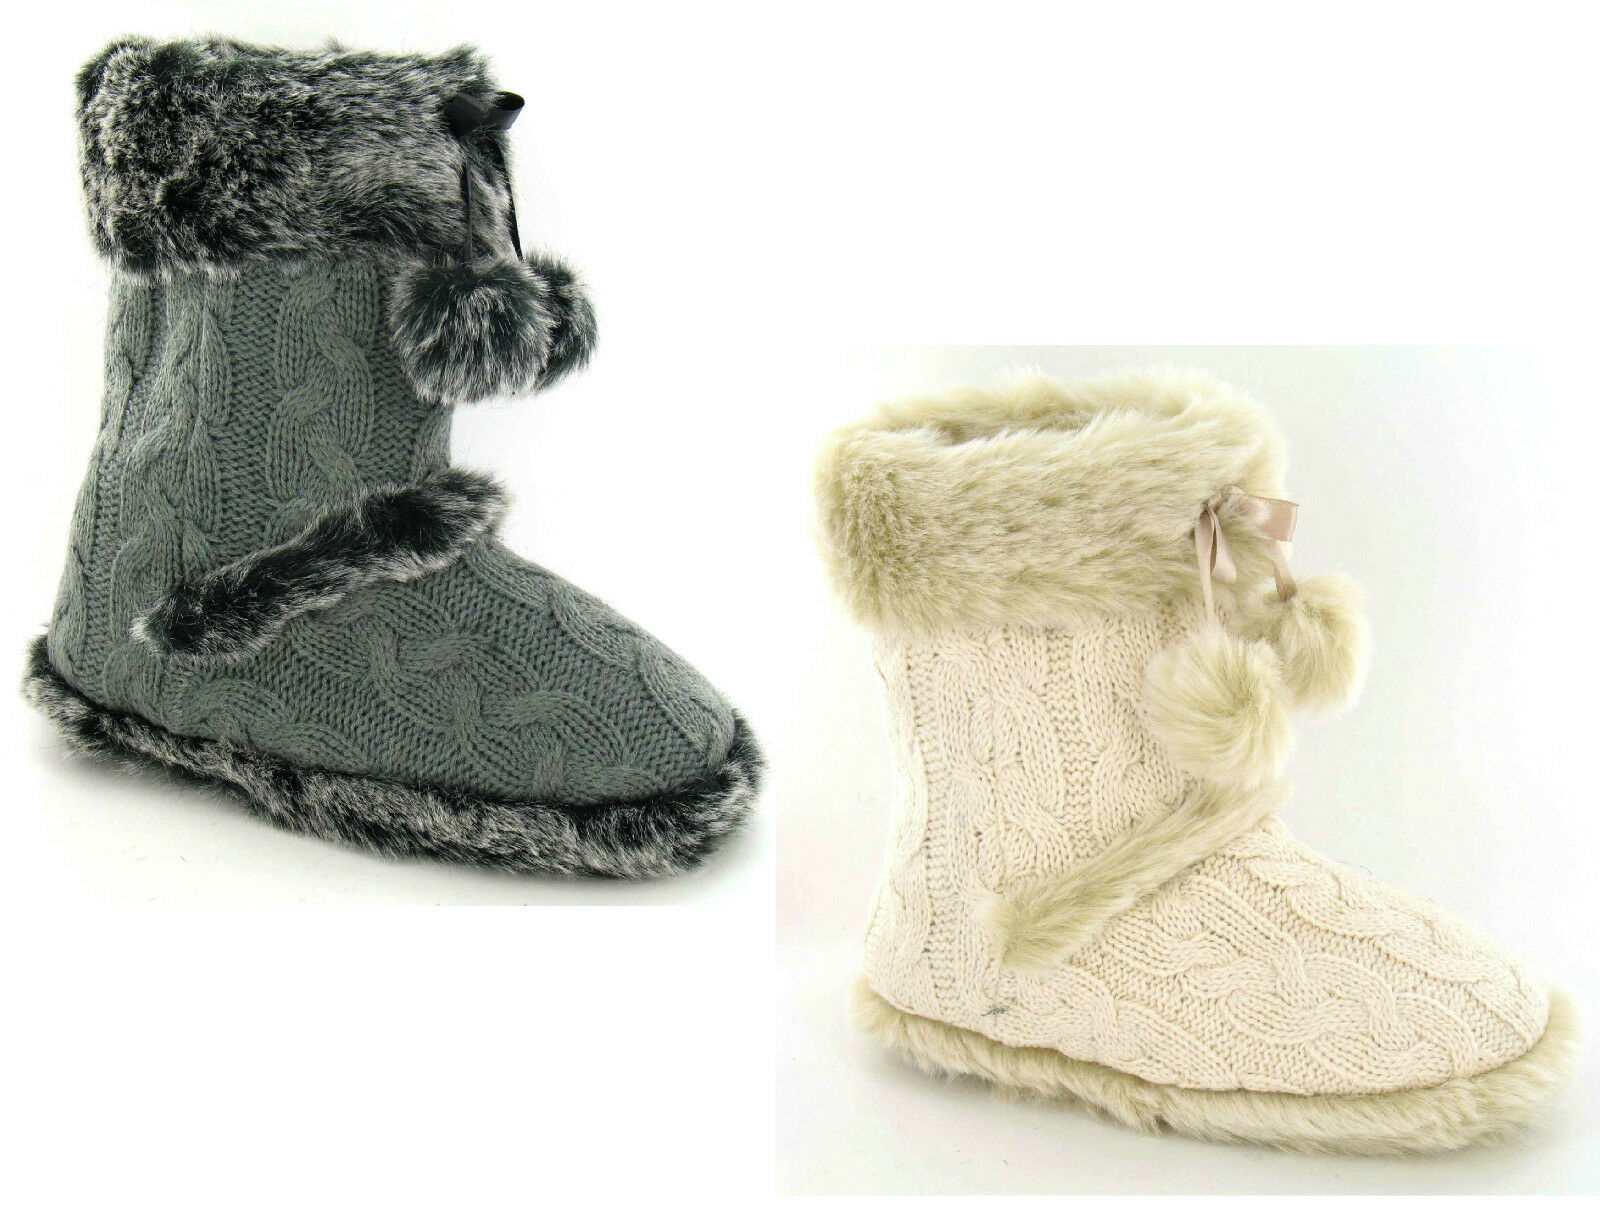 LADIES CABLE KNIT FAUX FUR SLIPPERS BOOTS X2037 IVORY OR DK GREY